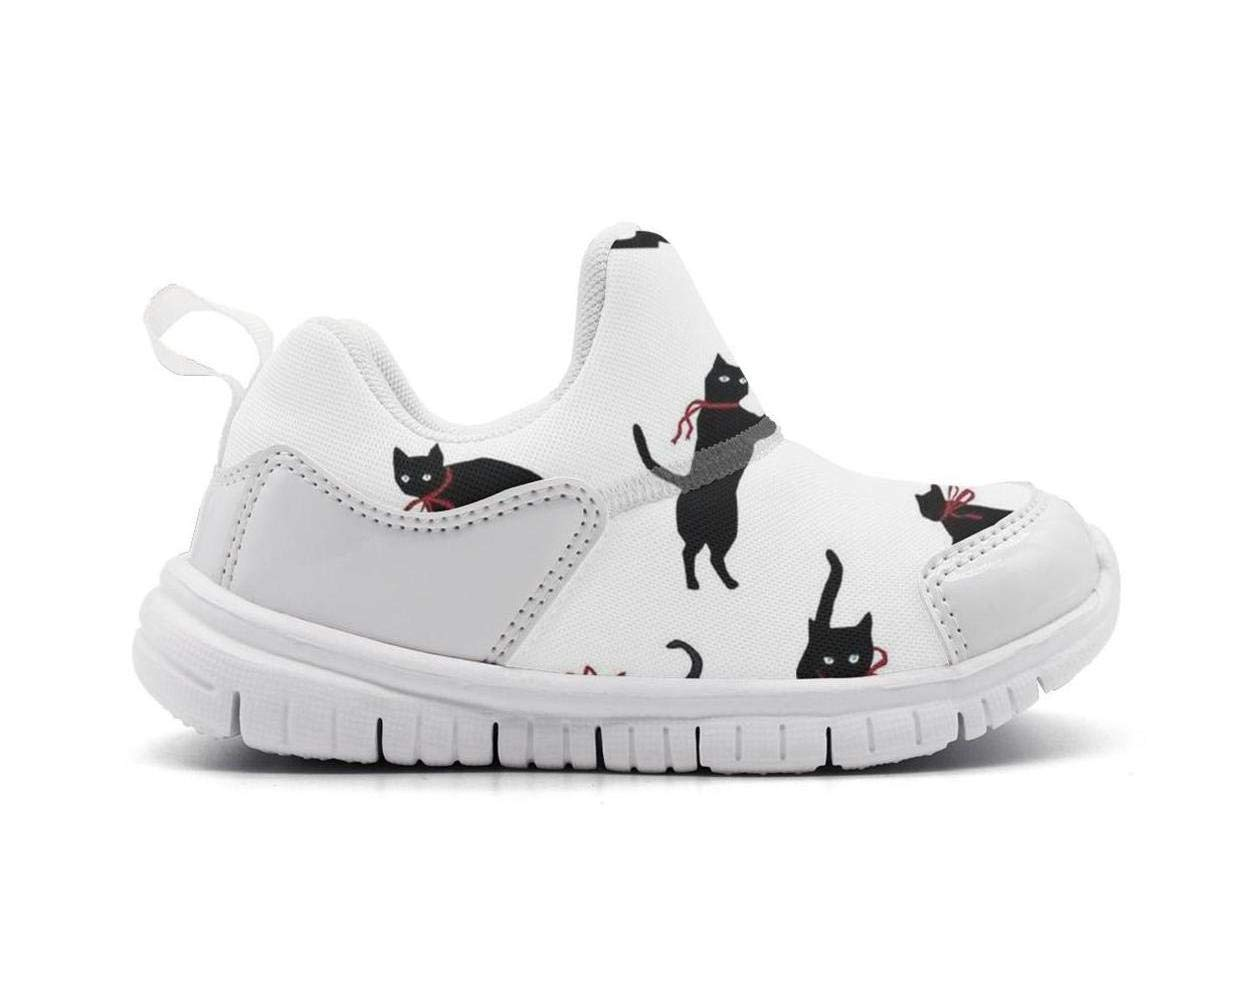 ONEYUAN Children Funny Cats Kid Casual Lightweight Sport Shoes Sneakers Walking Athletic Shoes